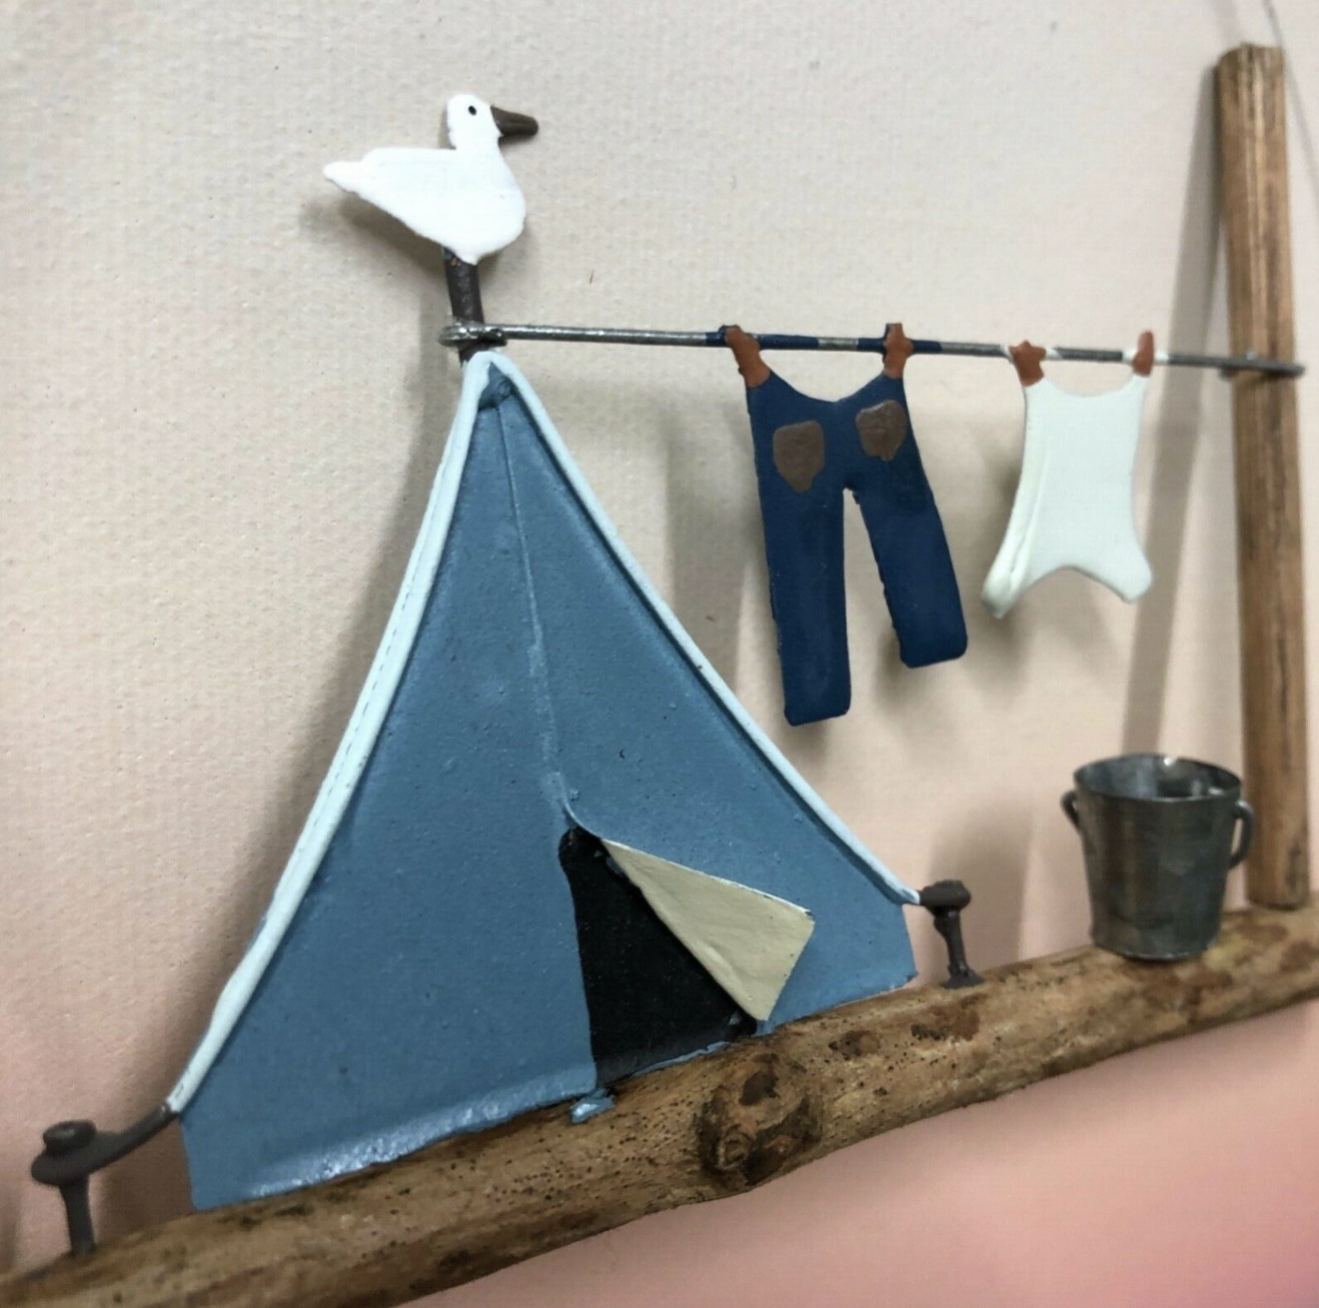 Retro blue tent with washing hanging decoration by shoeless joe